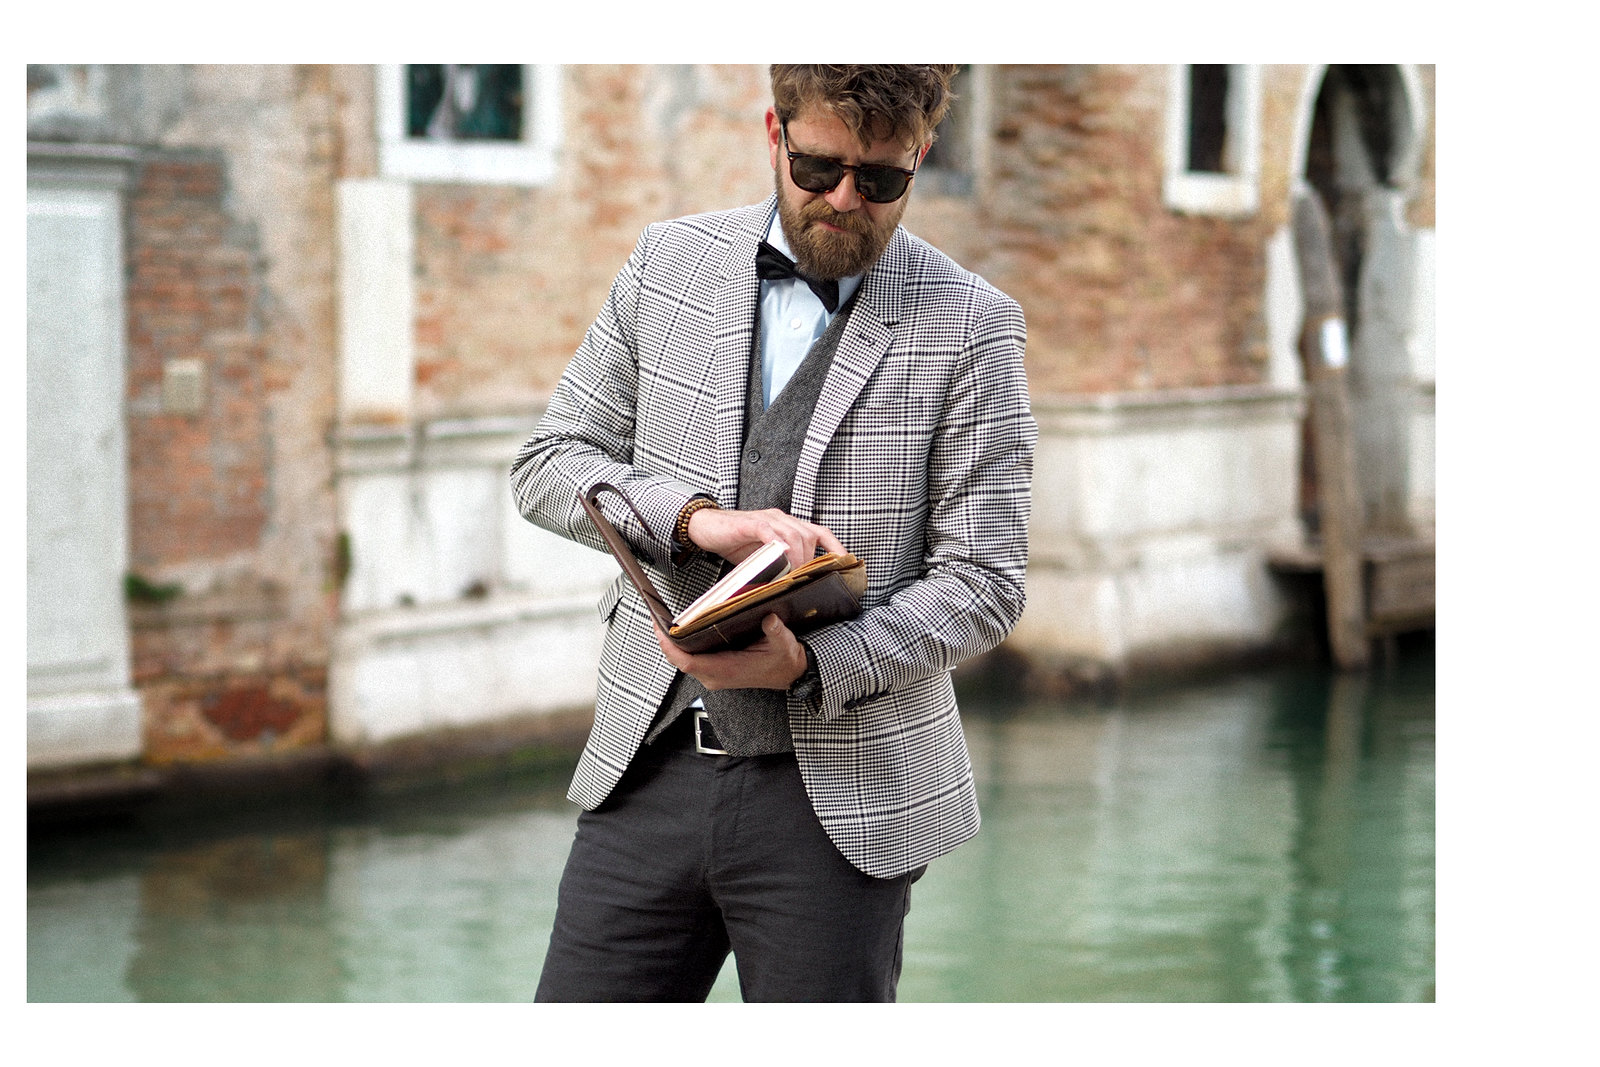 outfit professor glen check blazer autumn trend persol sunglasses intellectual style uni university prof sacha shoes bow tie elegant dandy style indiana jones venice look cats & dogs blog max bechmann 5